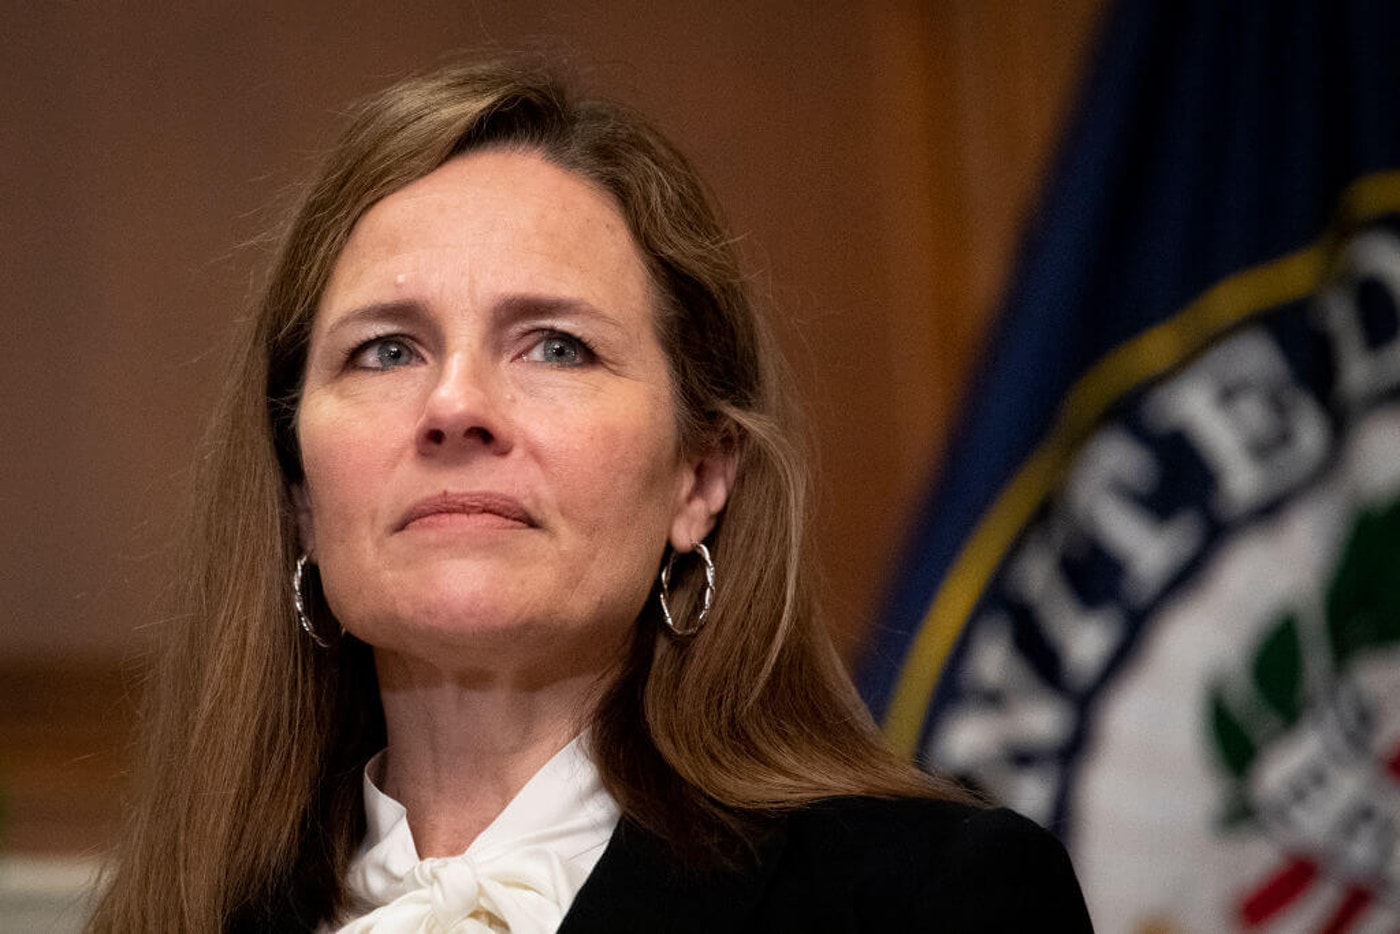 Amy Coney Barrett, President Trump's nominee to replace Justice Ruth Bader Ginsburg on the Supreme Court, holds views that don't align with a majority of American Catholics (Getty/Pool).